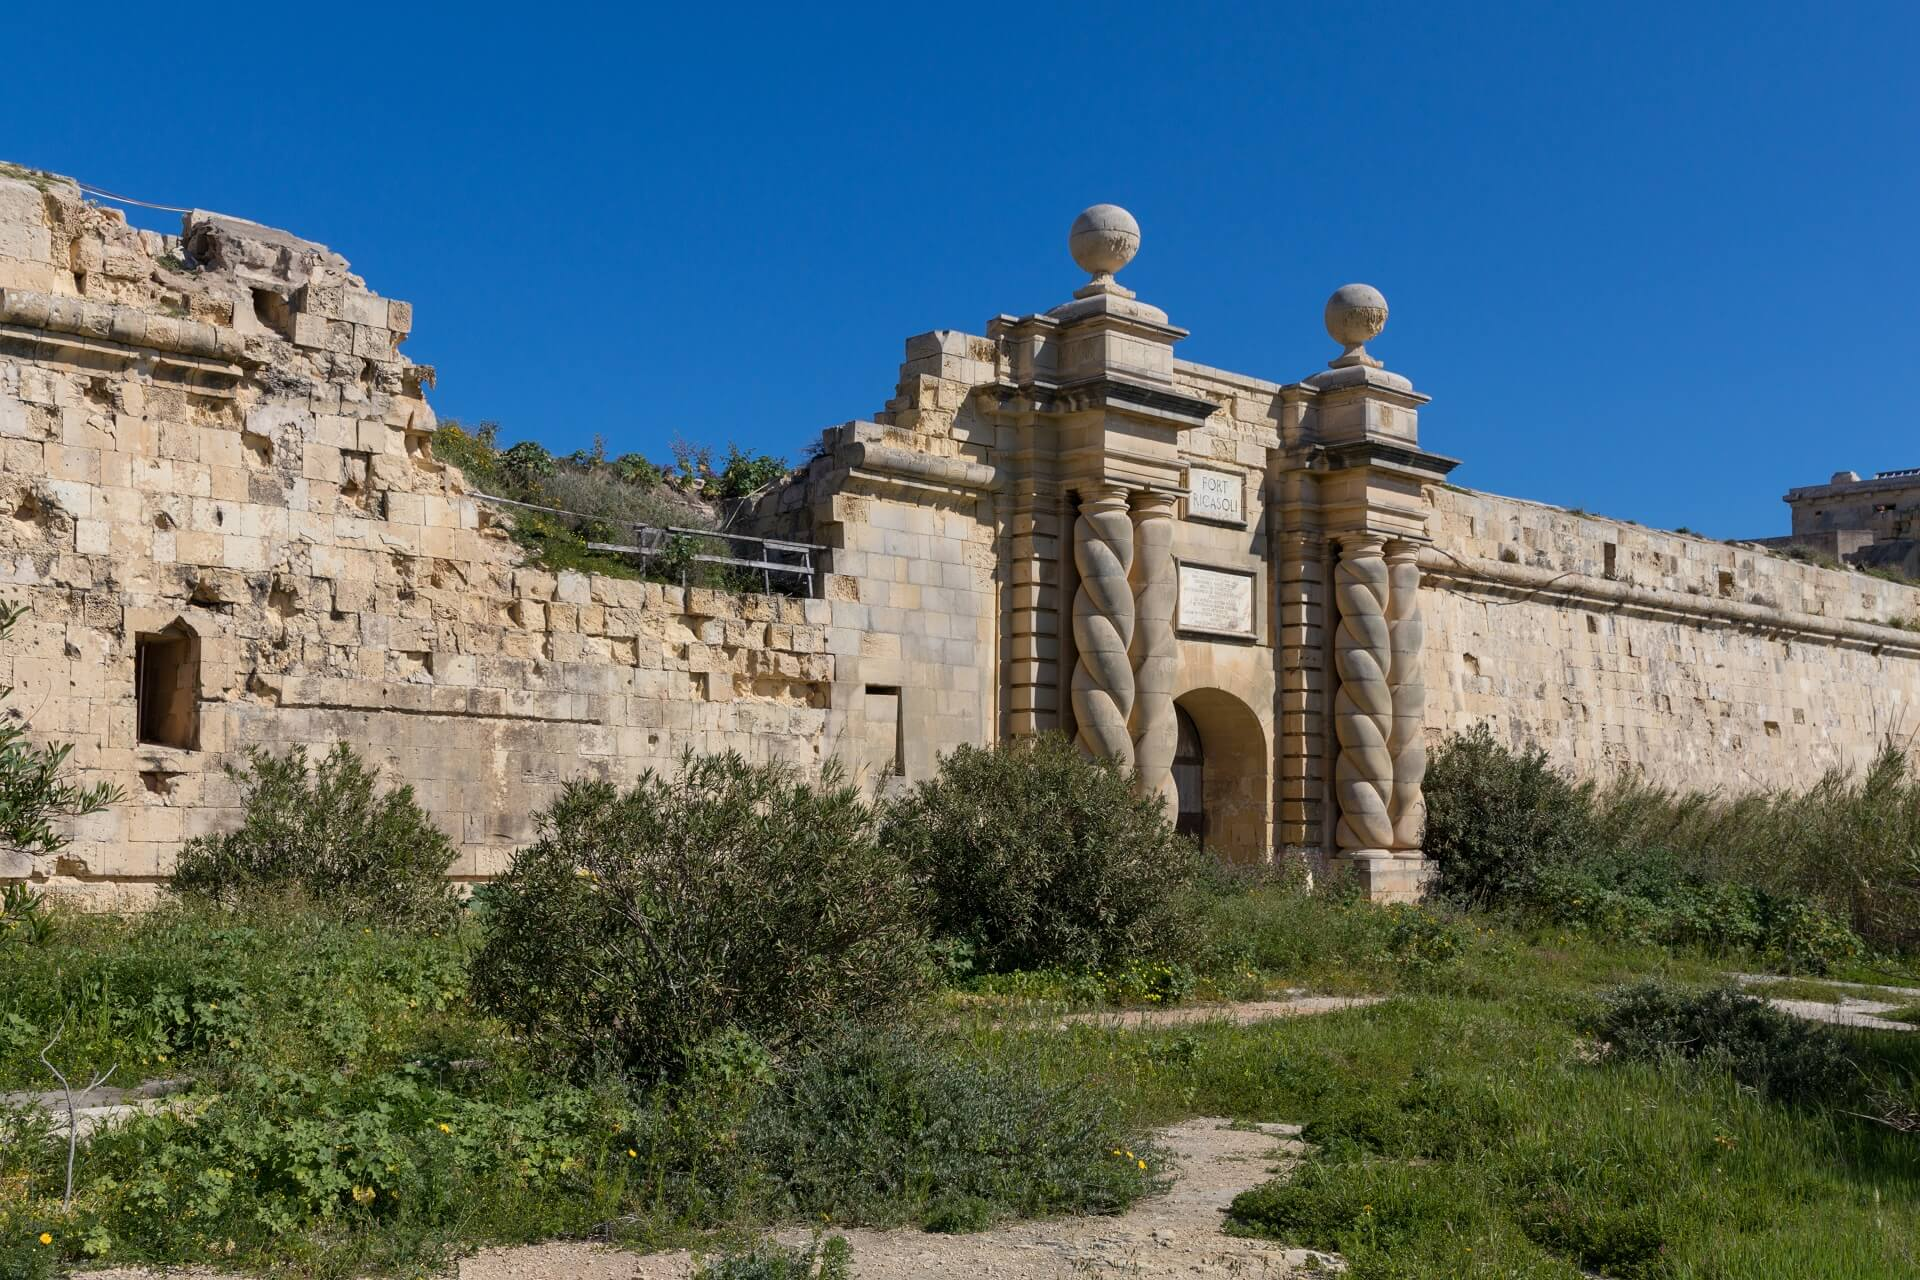 Fort Ricasoli - Ein Game of Thrones Drehort auf Malta